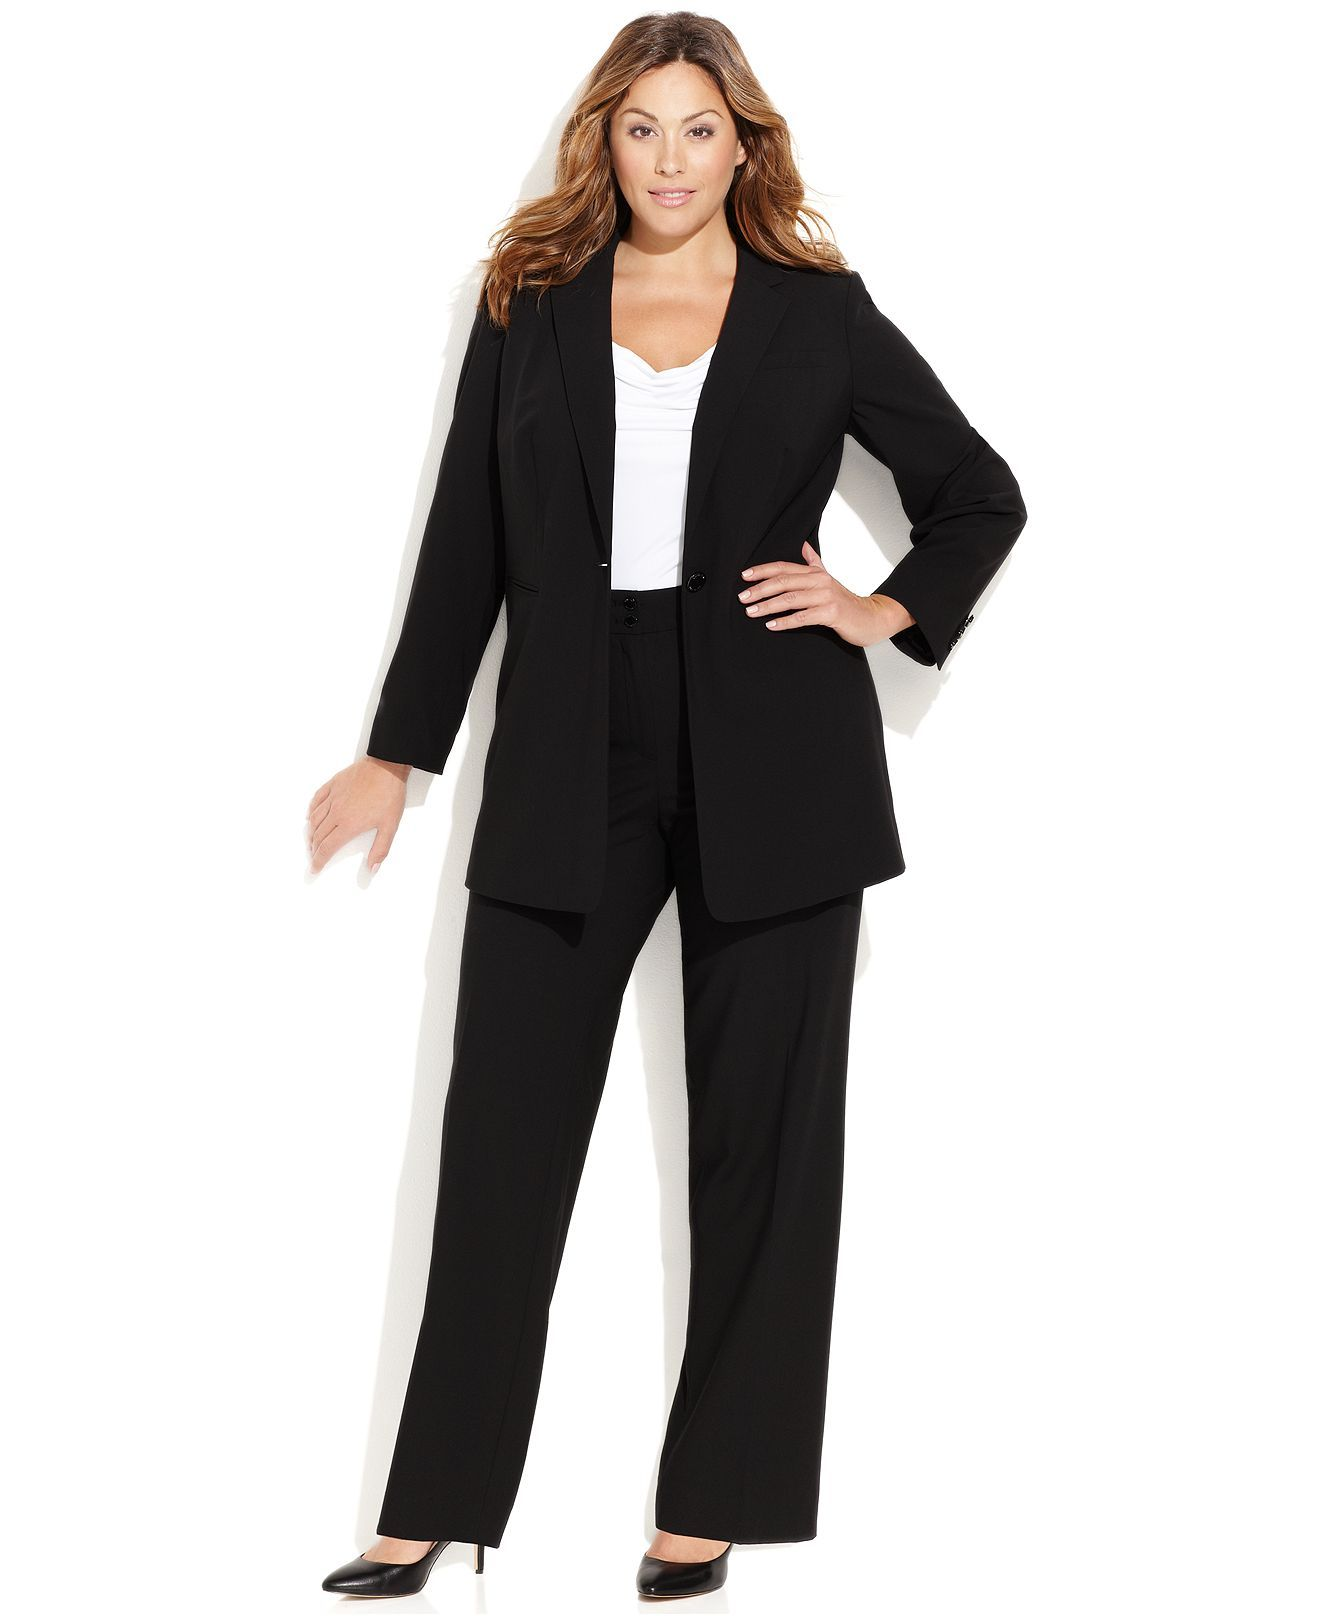 a4fb04e75fe Calvin Klein Plus Size Suit Separates Collection - Wear to Work - Women -  Macy s